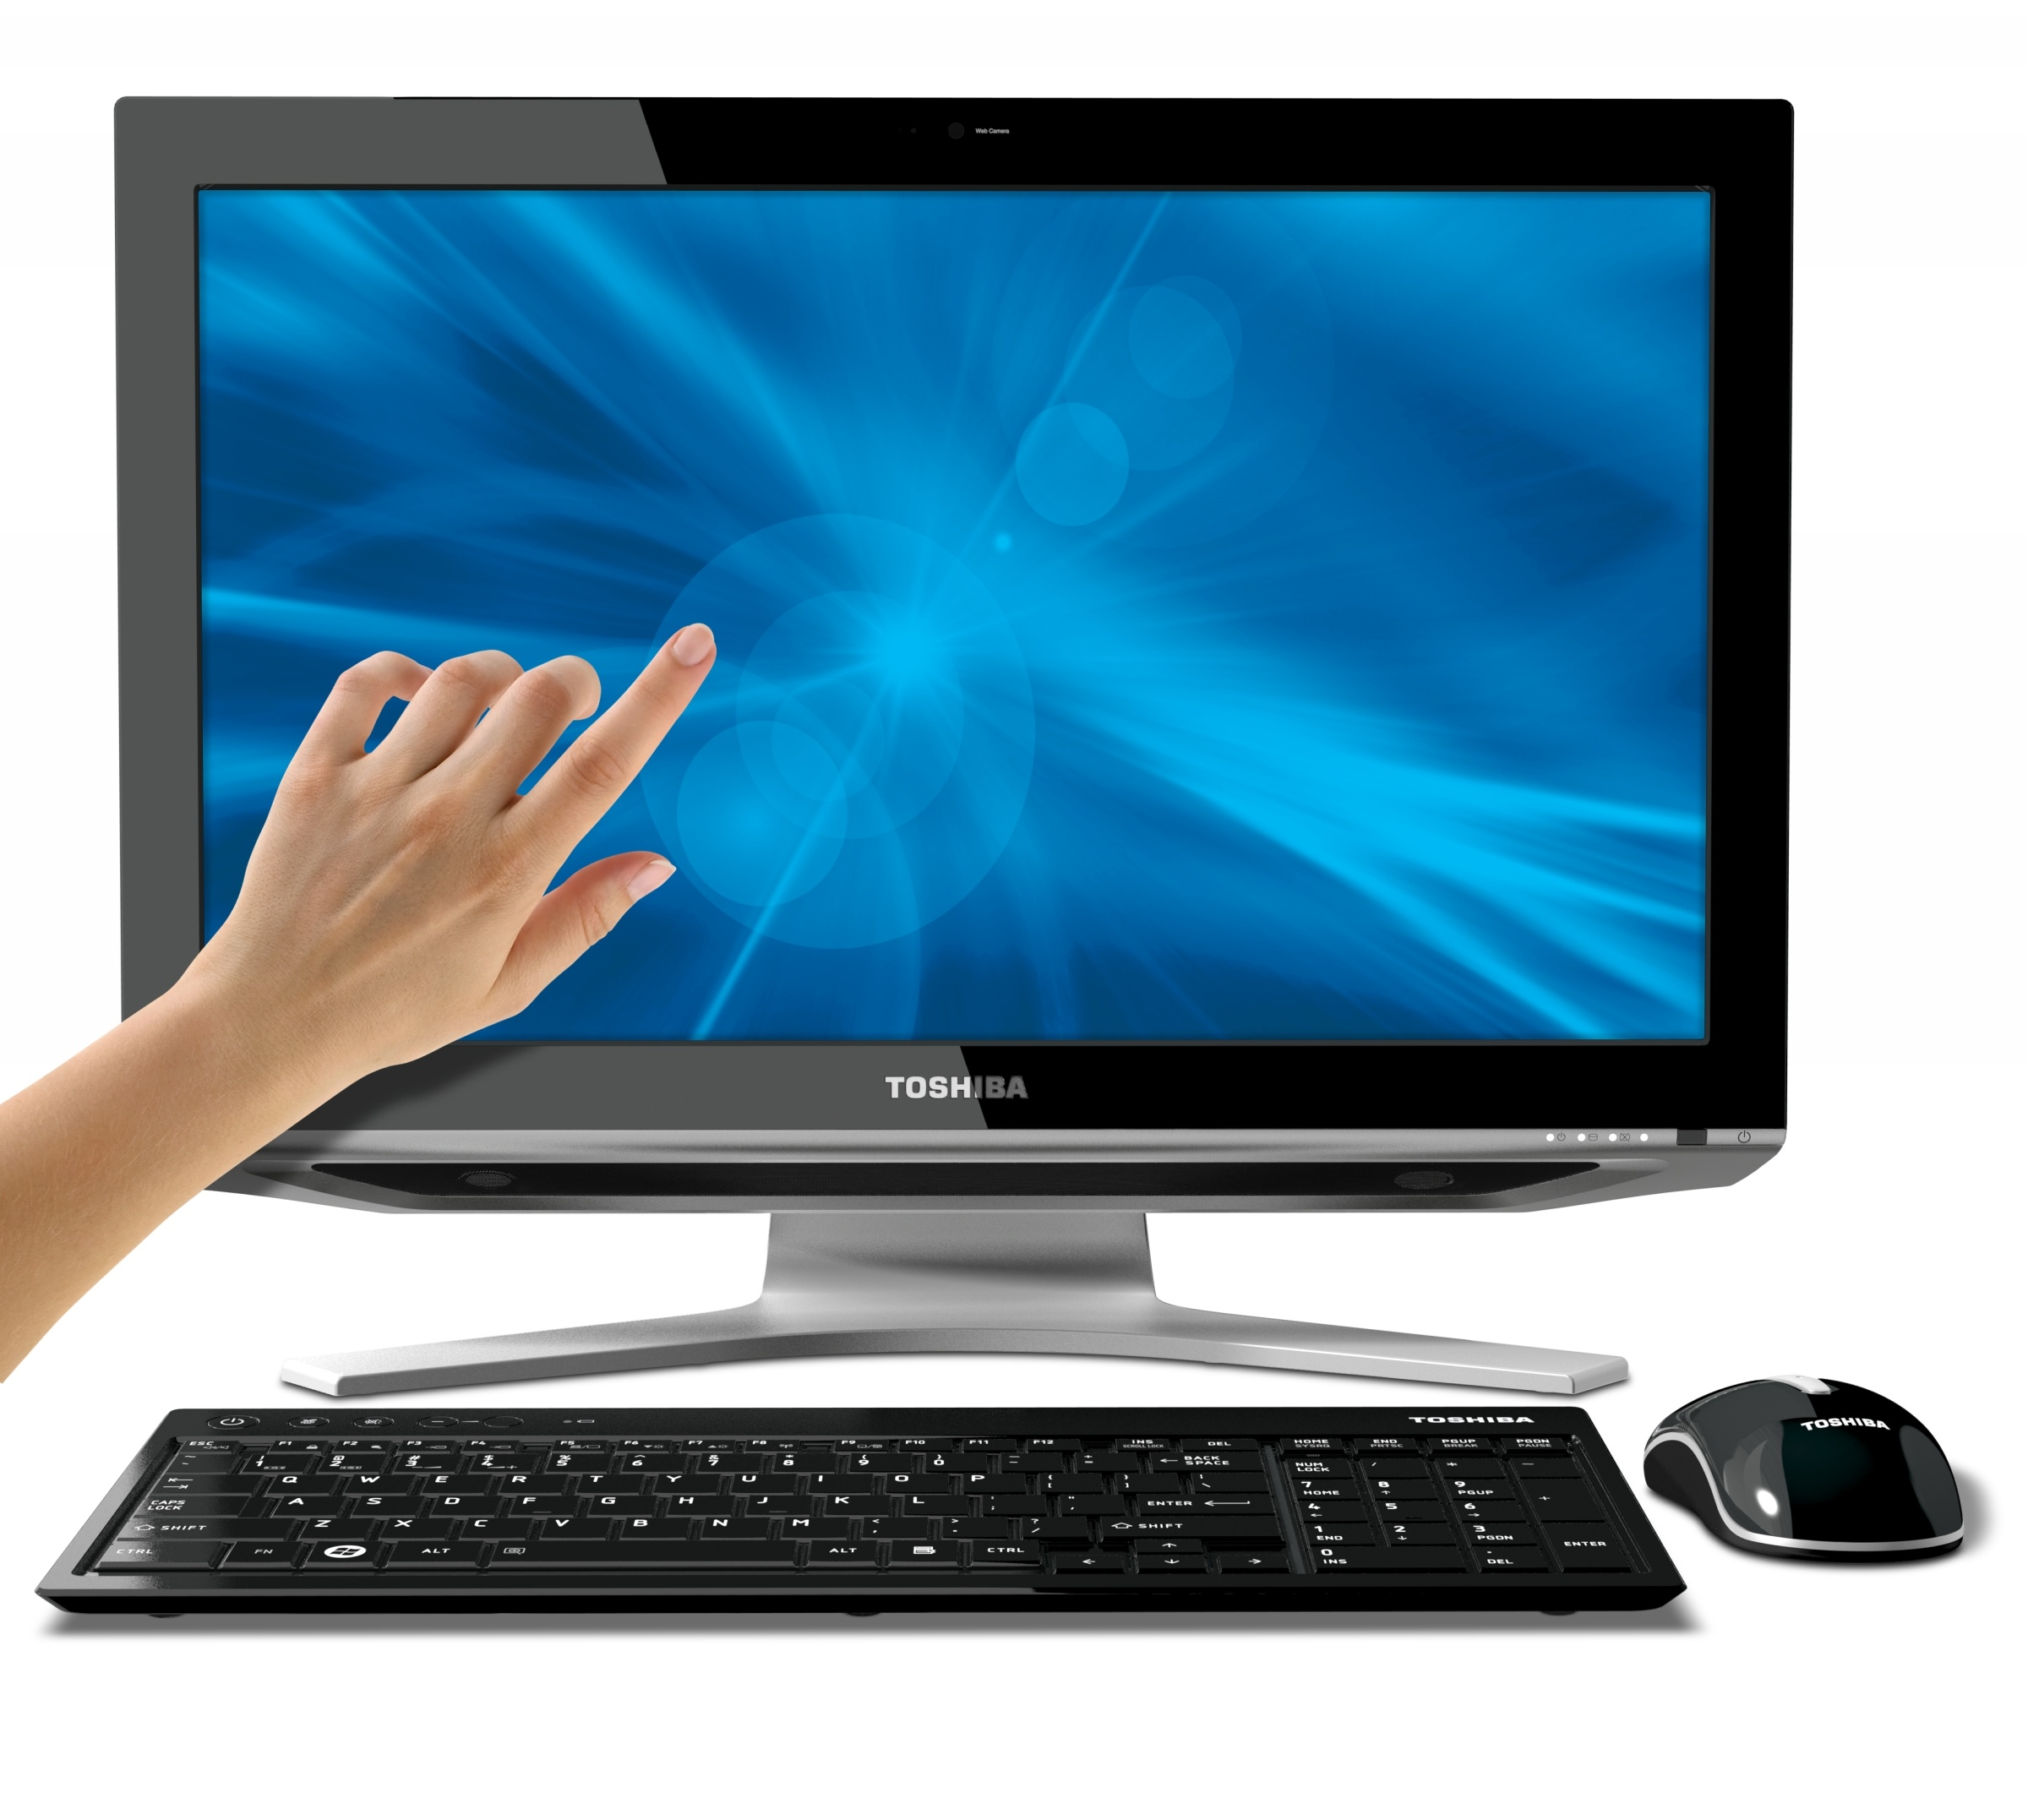 Toshiba DX1215 All-in-One PC